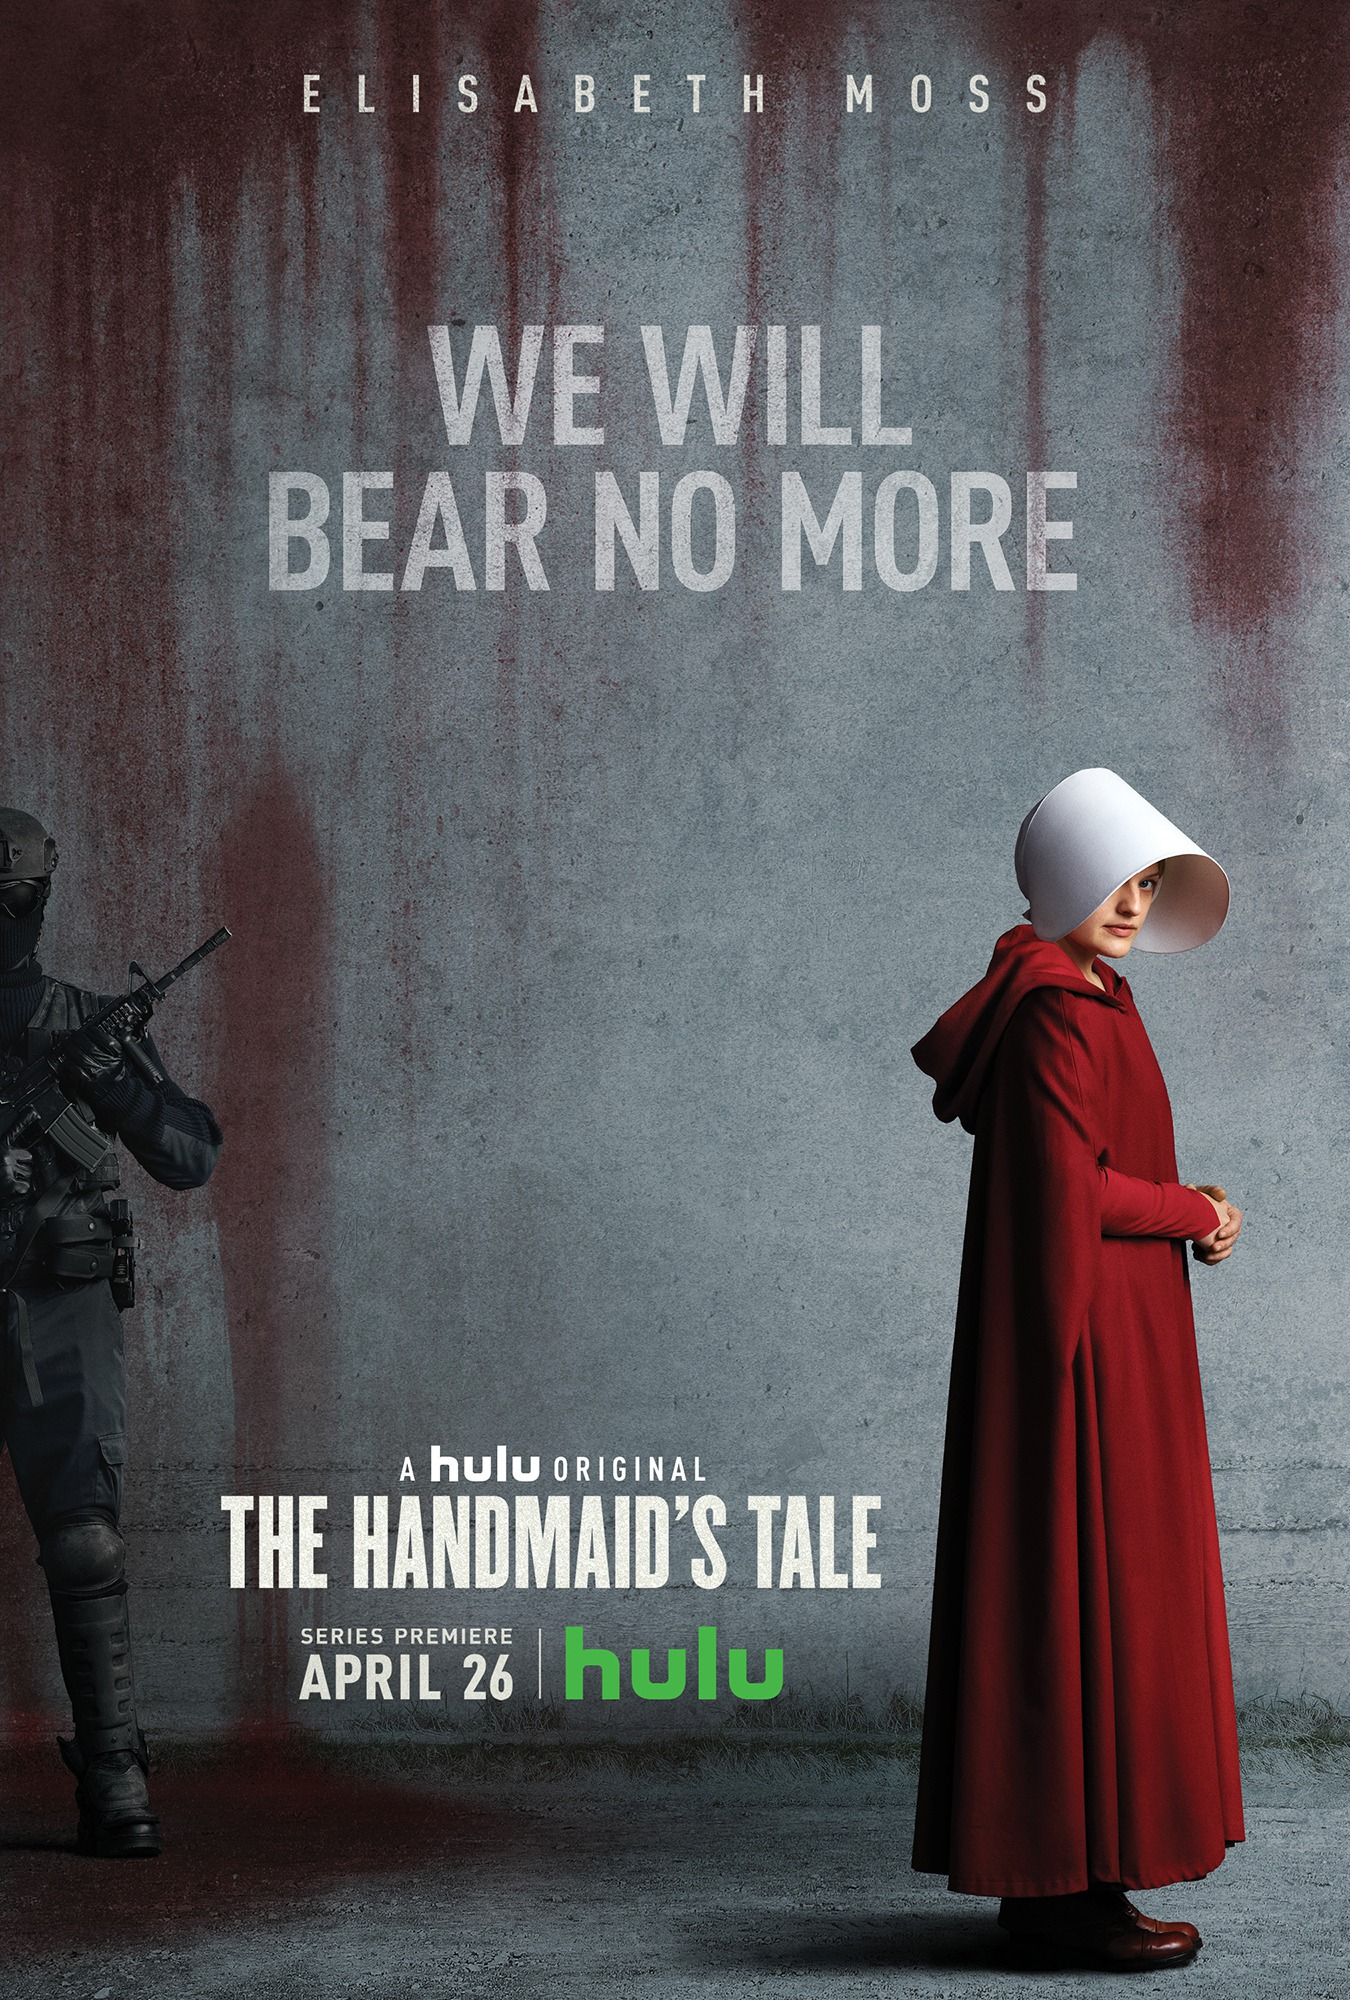 the handmaidens tale and 1984 In both 1984 and the handmaid's tale, language is used to deny individuality to citizens and to enforce conformity to the ruling party's beliefs individuals in gilead have their freedom removed this is done by the conscious elimination of literacy among the population 6.